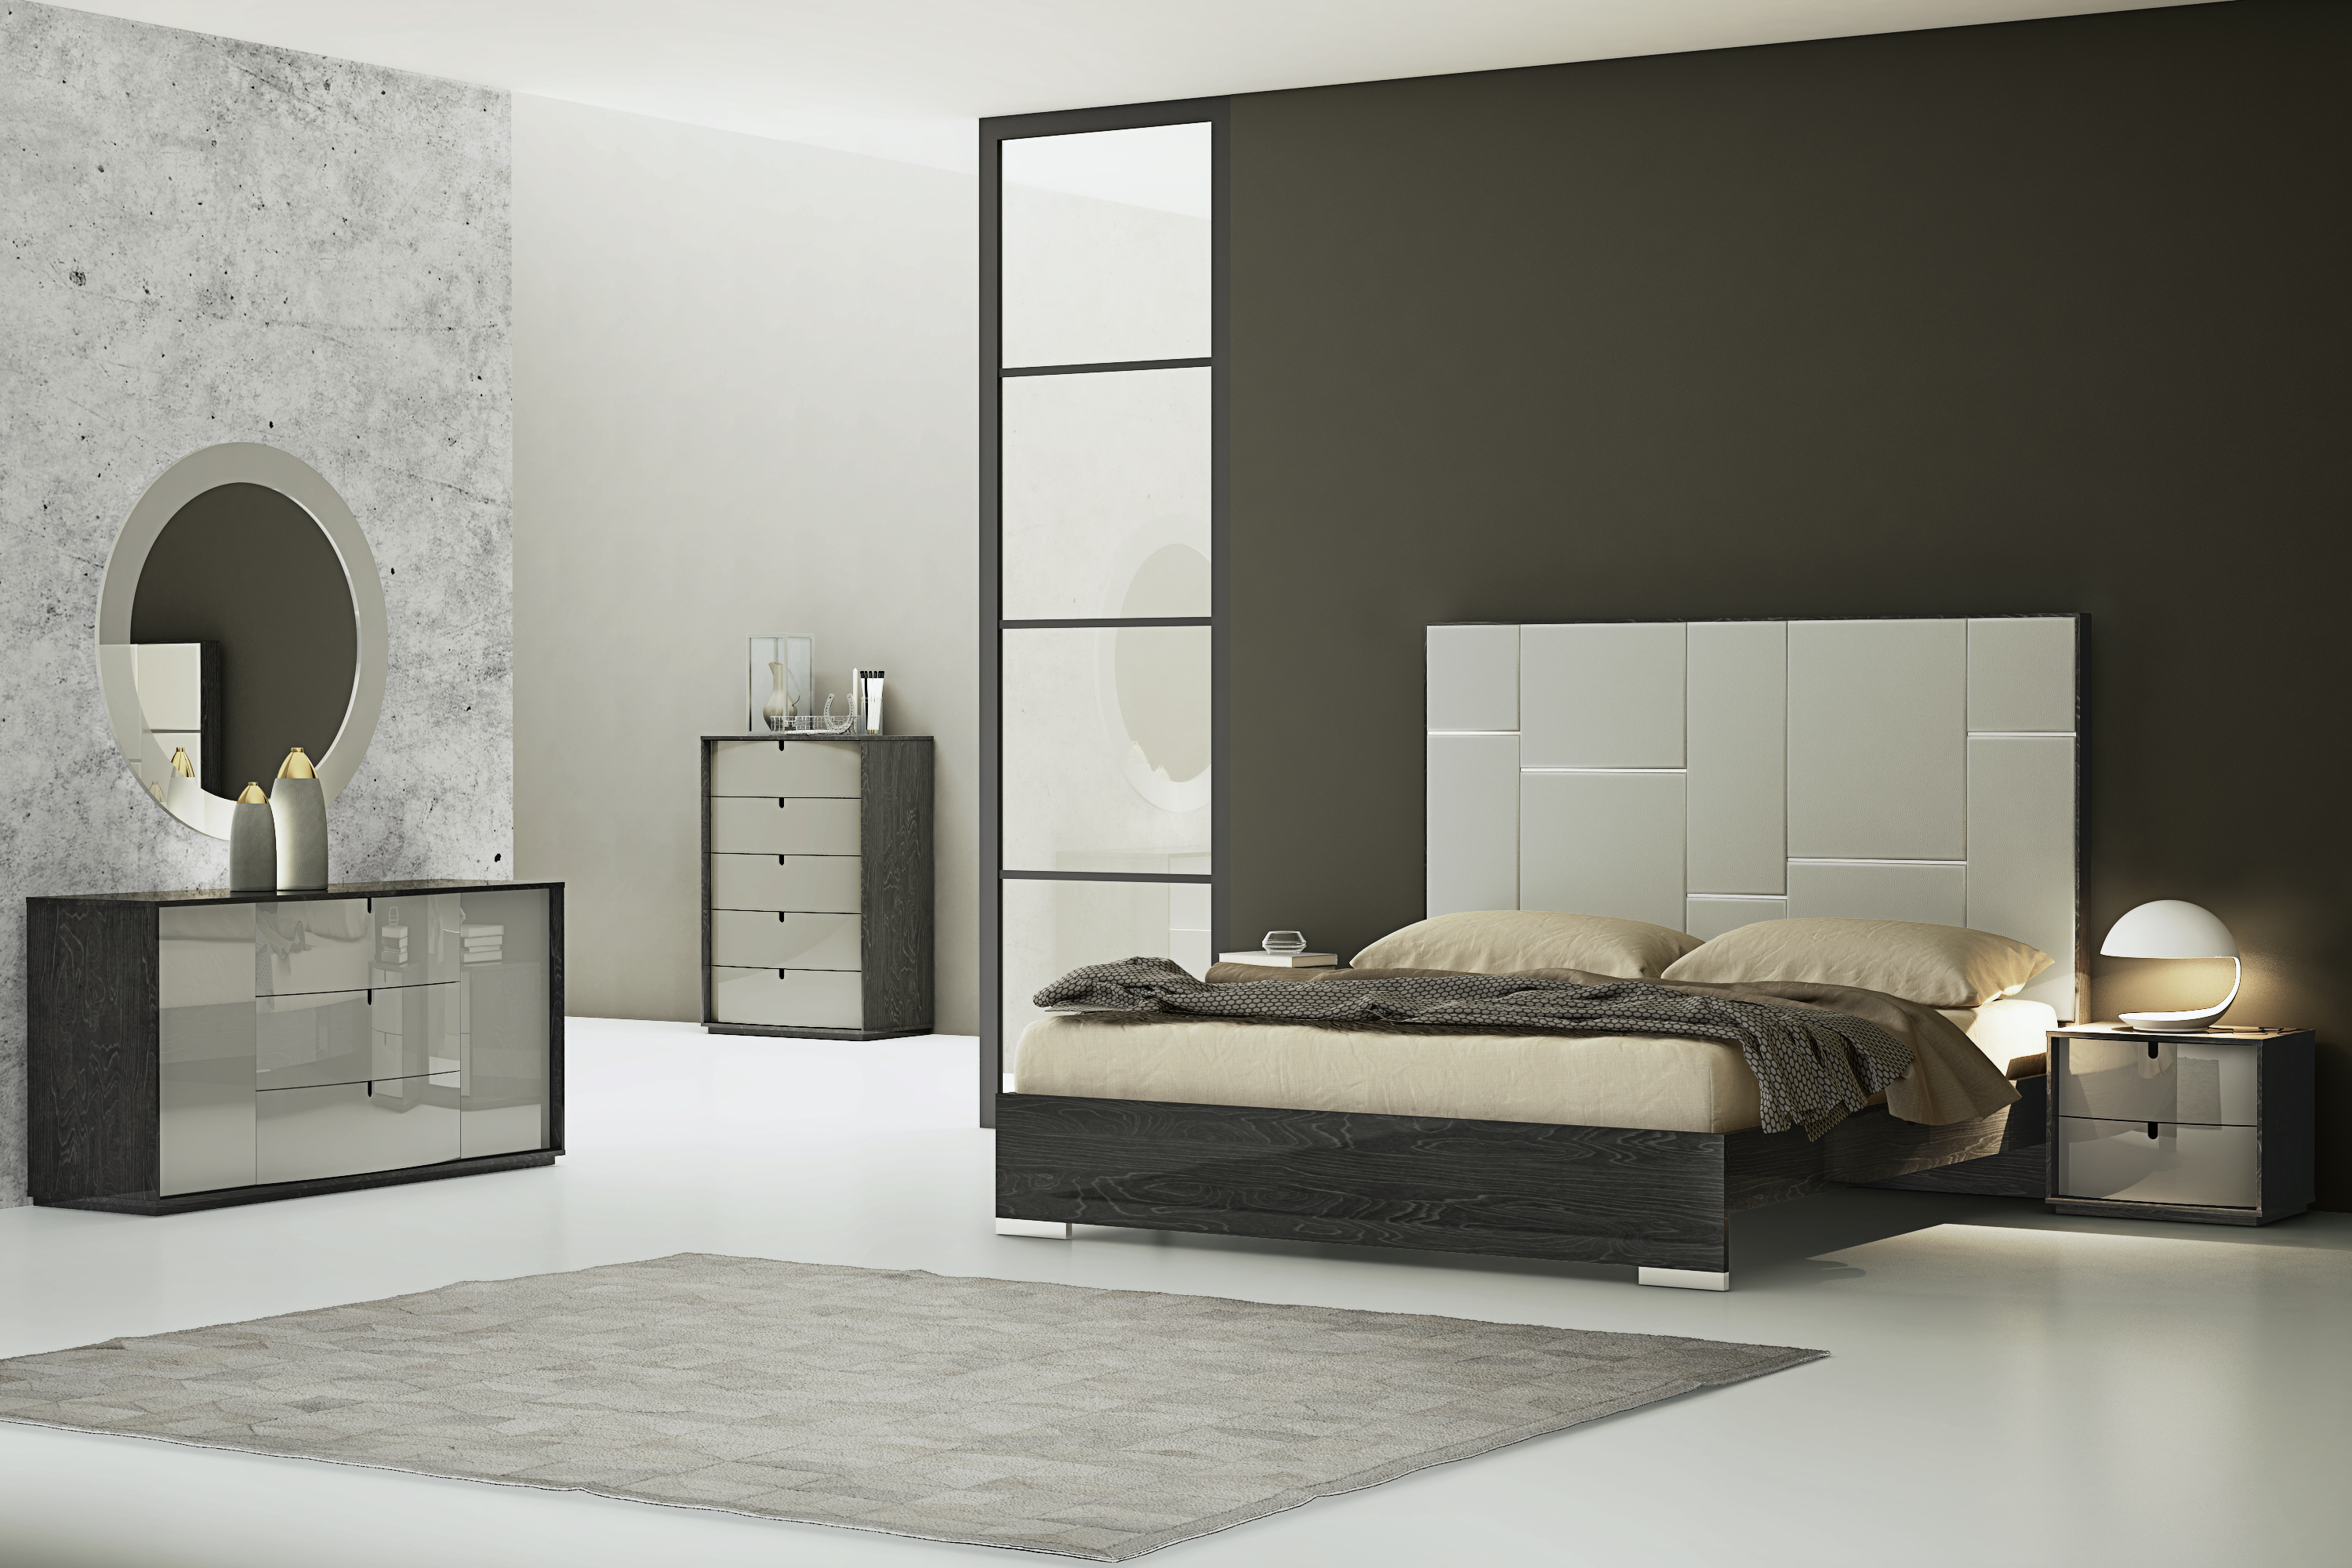 design ideas designs platform collection bunch modern bedroom contemporary beds of latest wooden bed